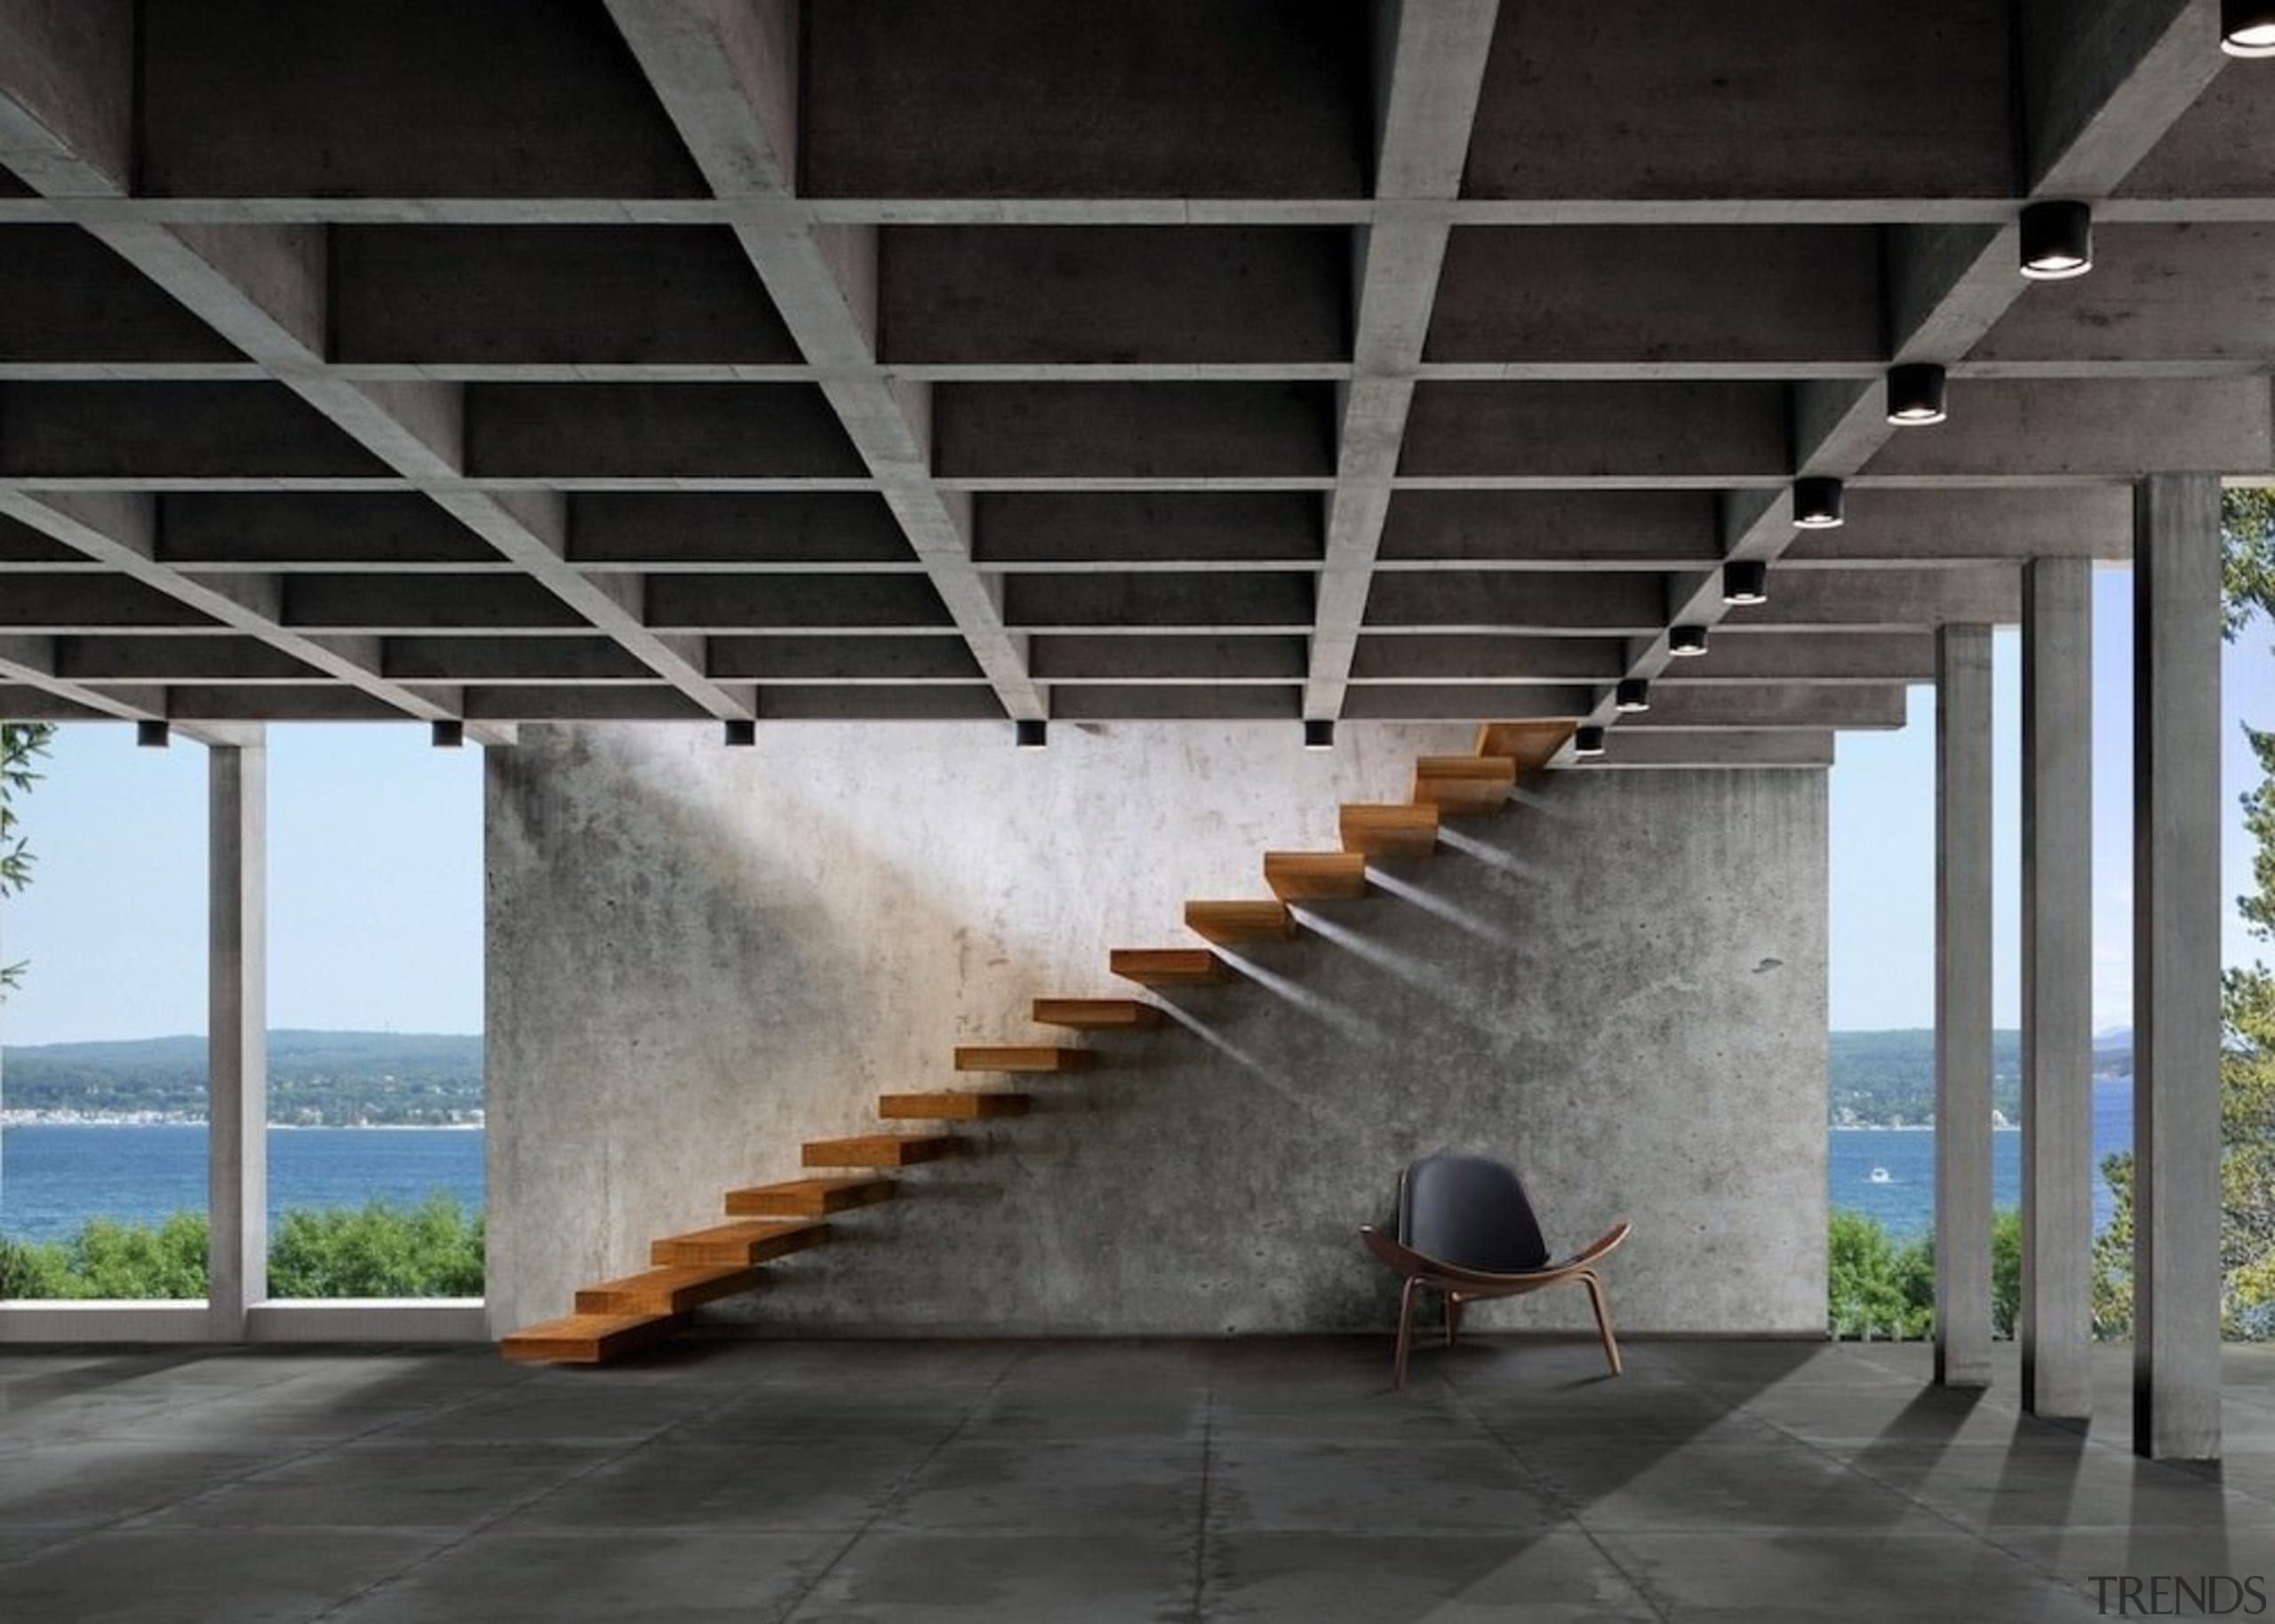 This floating staircase runs down an area with architecture, daylighting, structure, black, gray